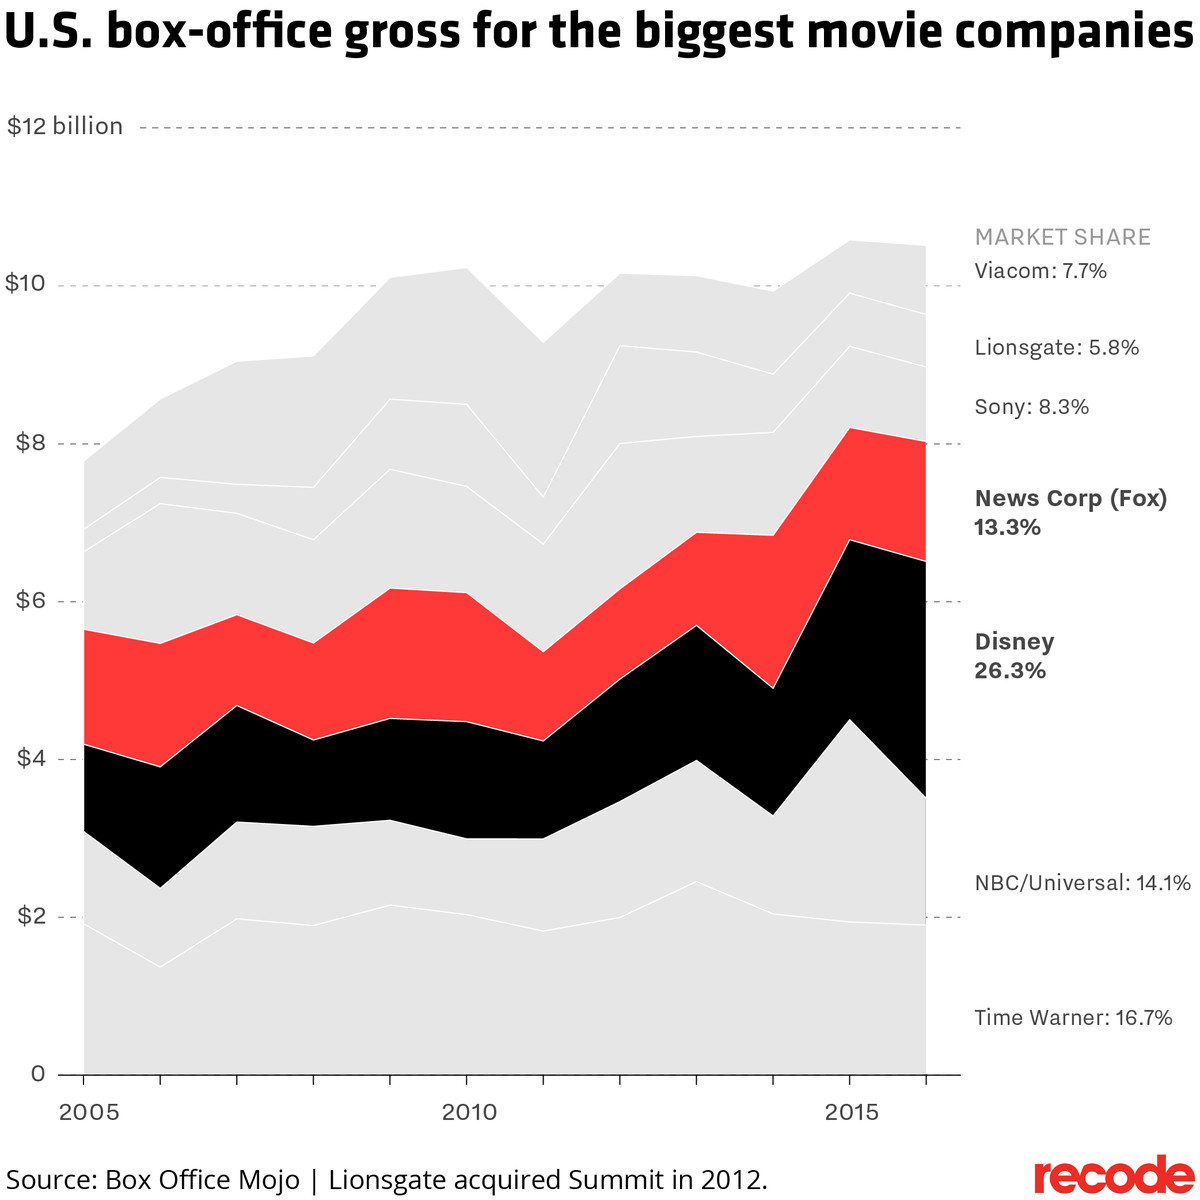 U.S. box-office gross for the biggest movie companies